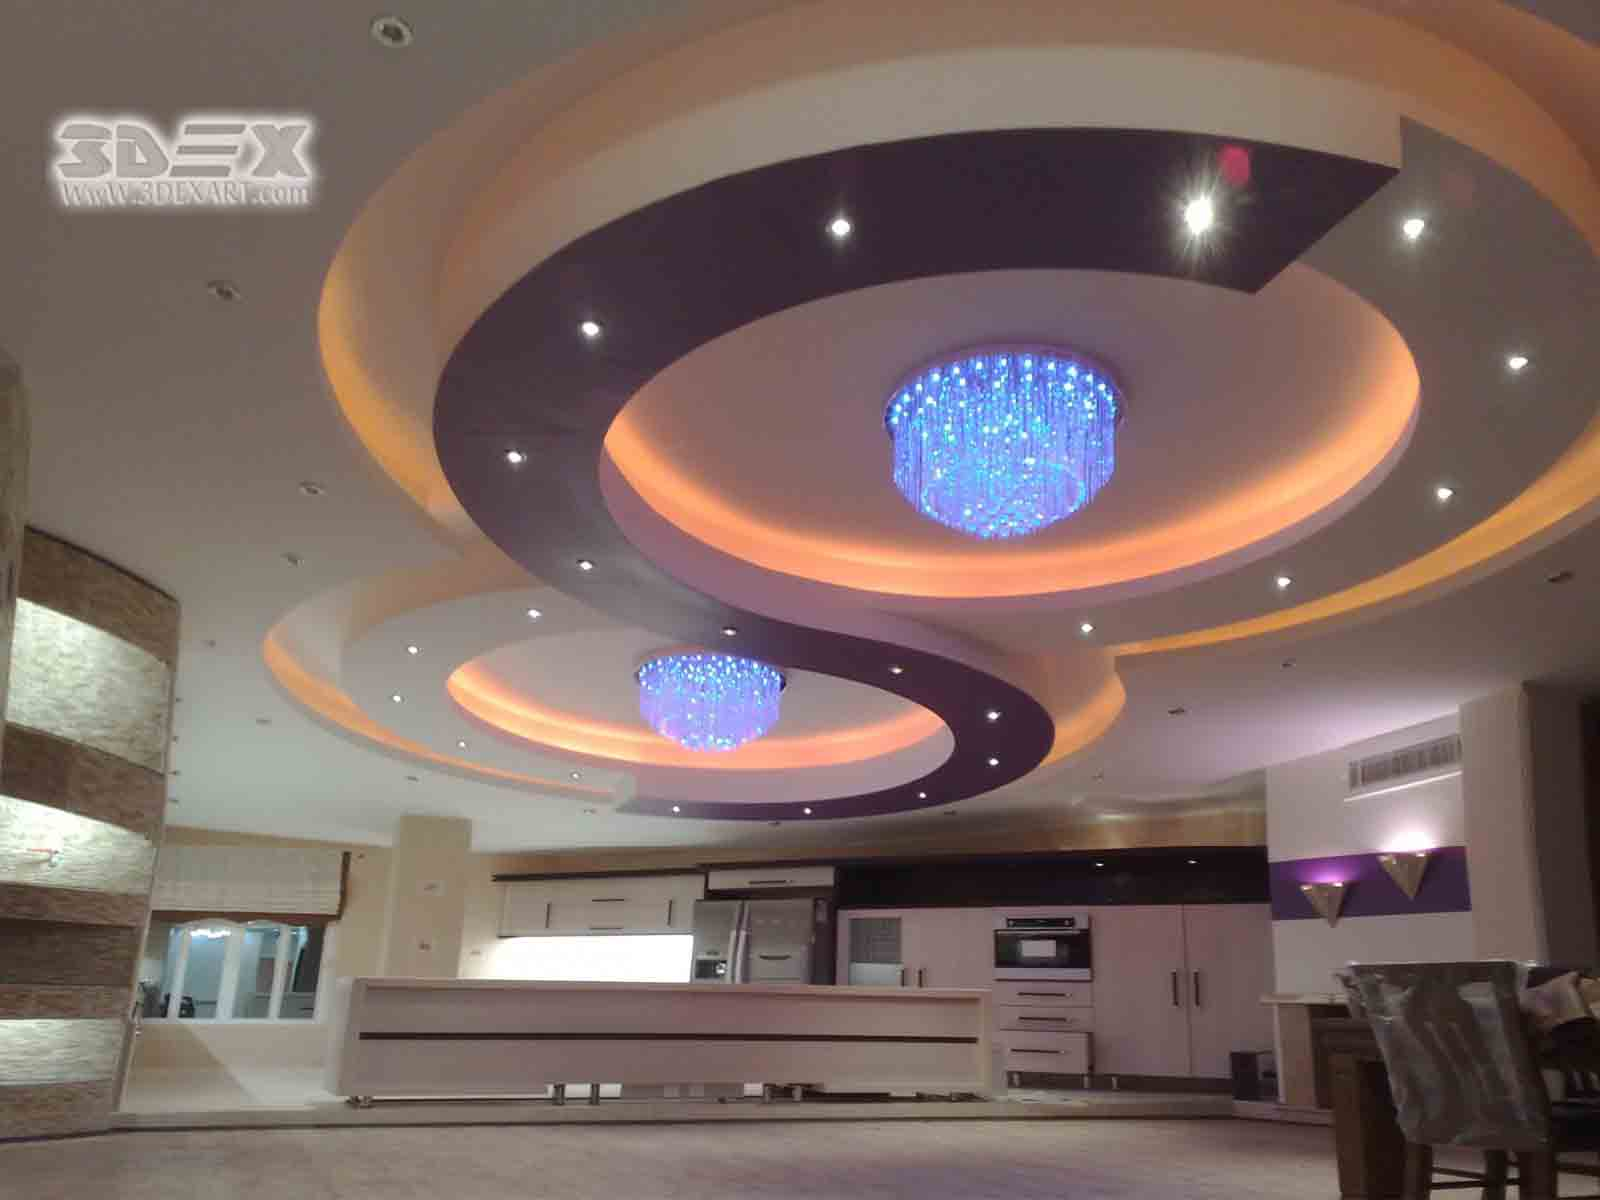 Latest POP design for hall, 50 false ceiling designs for ...